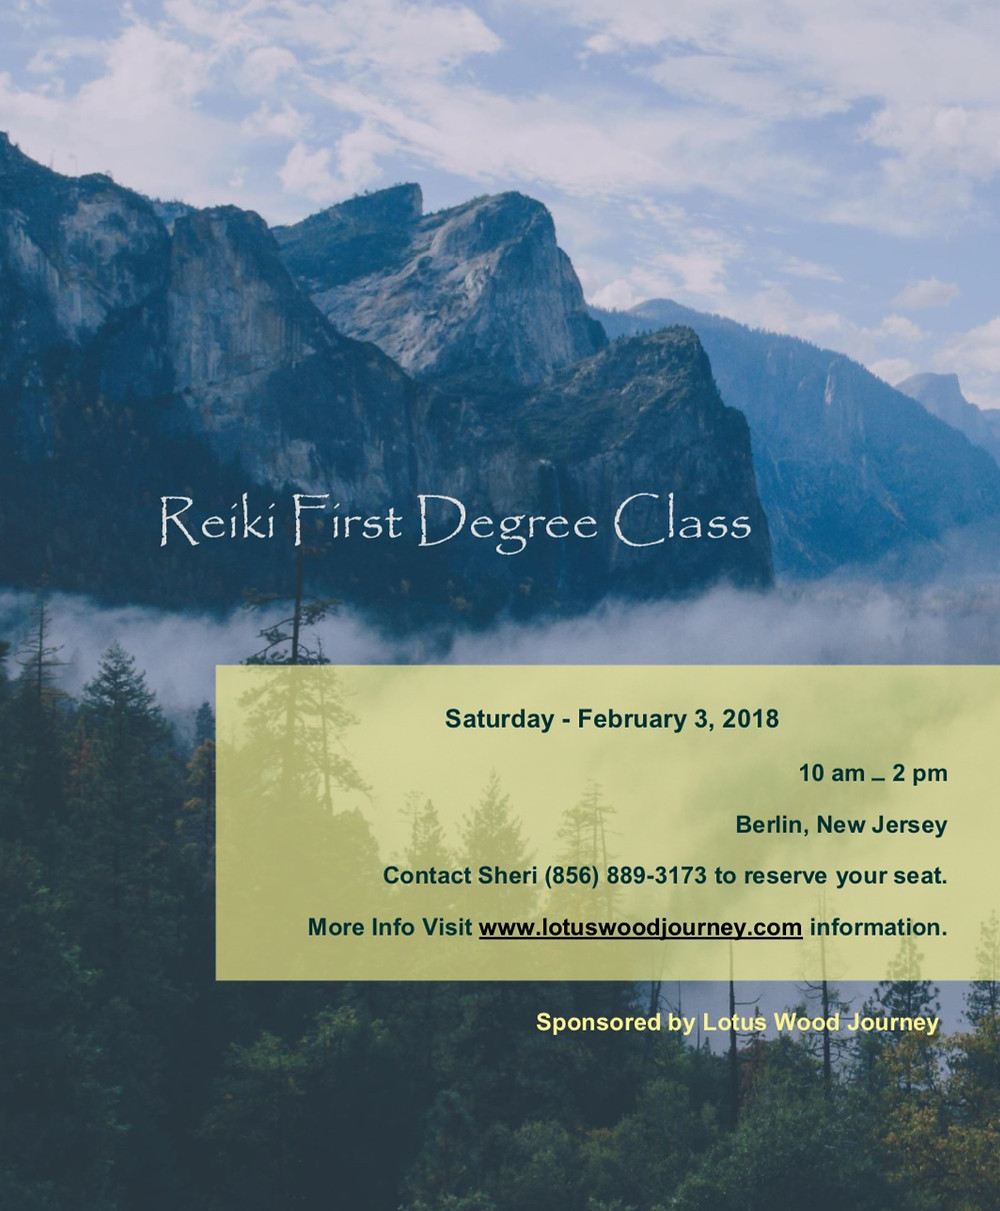 Reiki First Degree Class